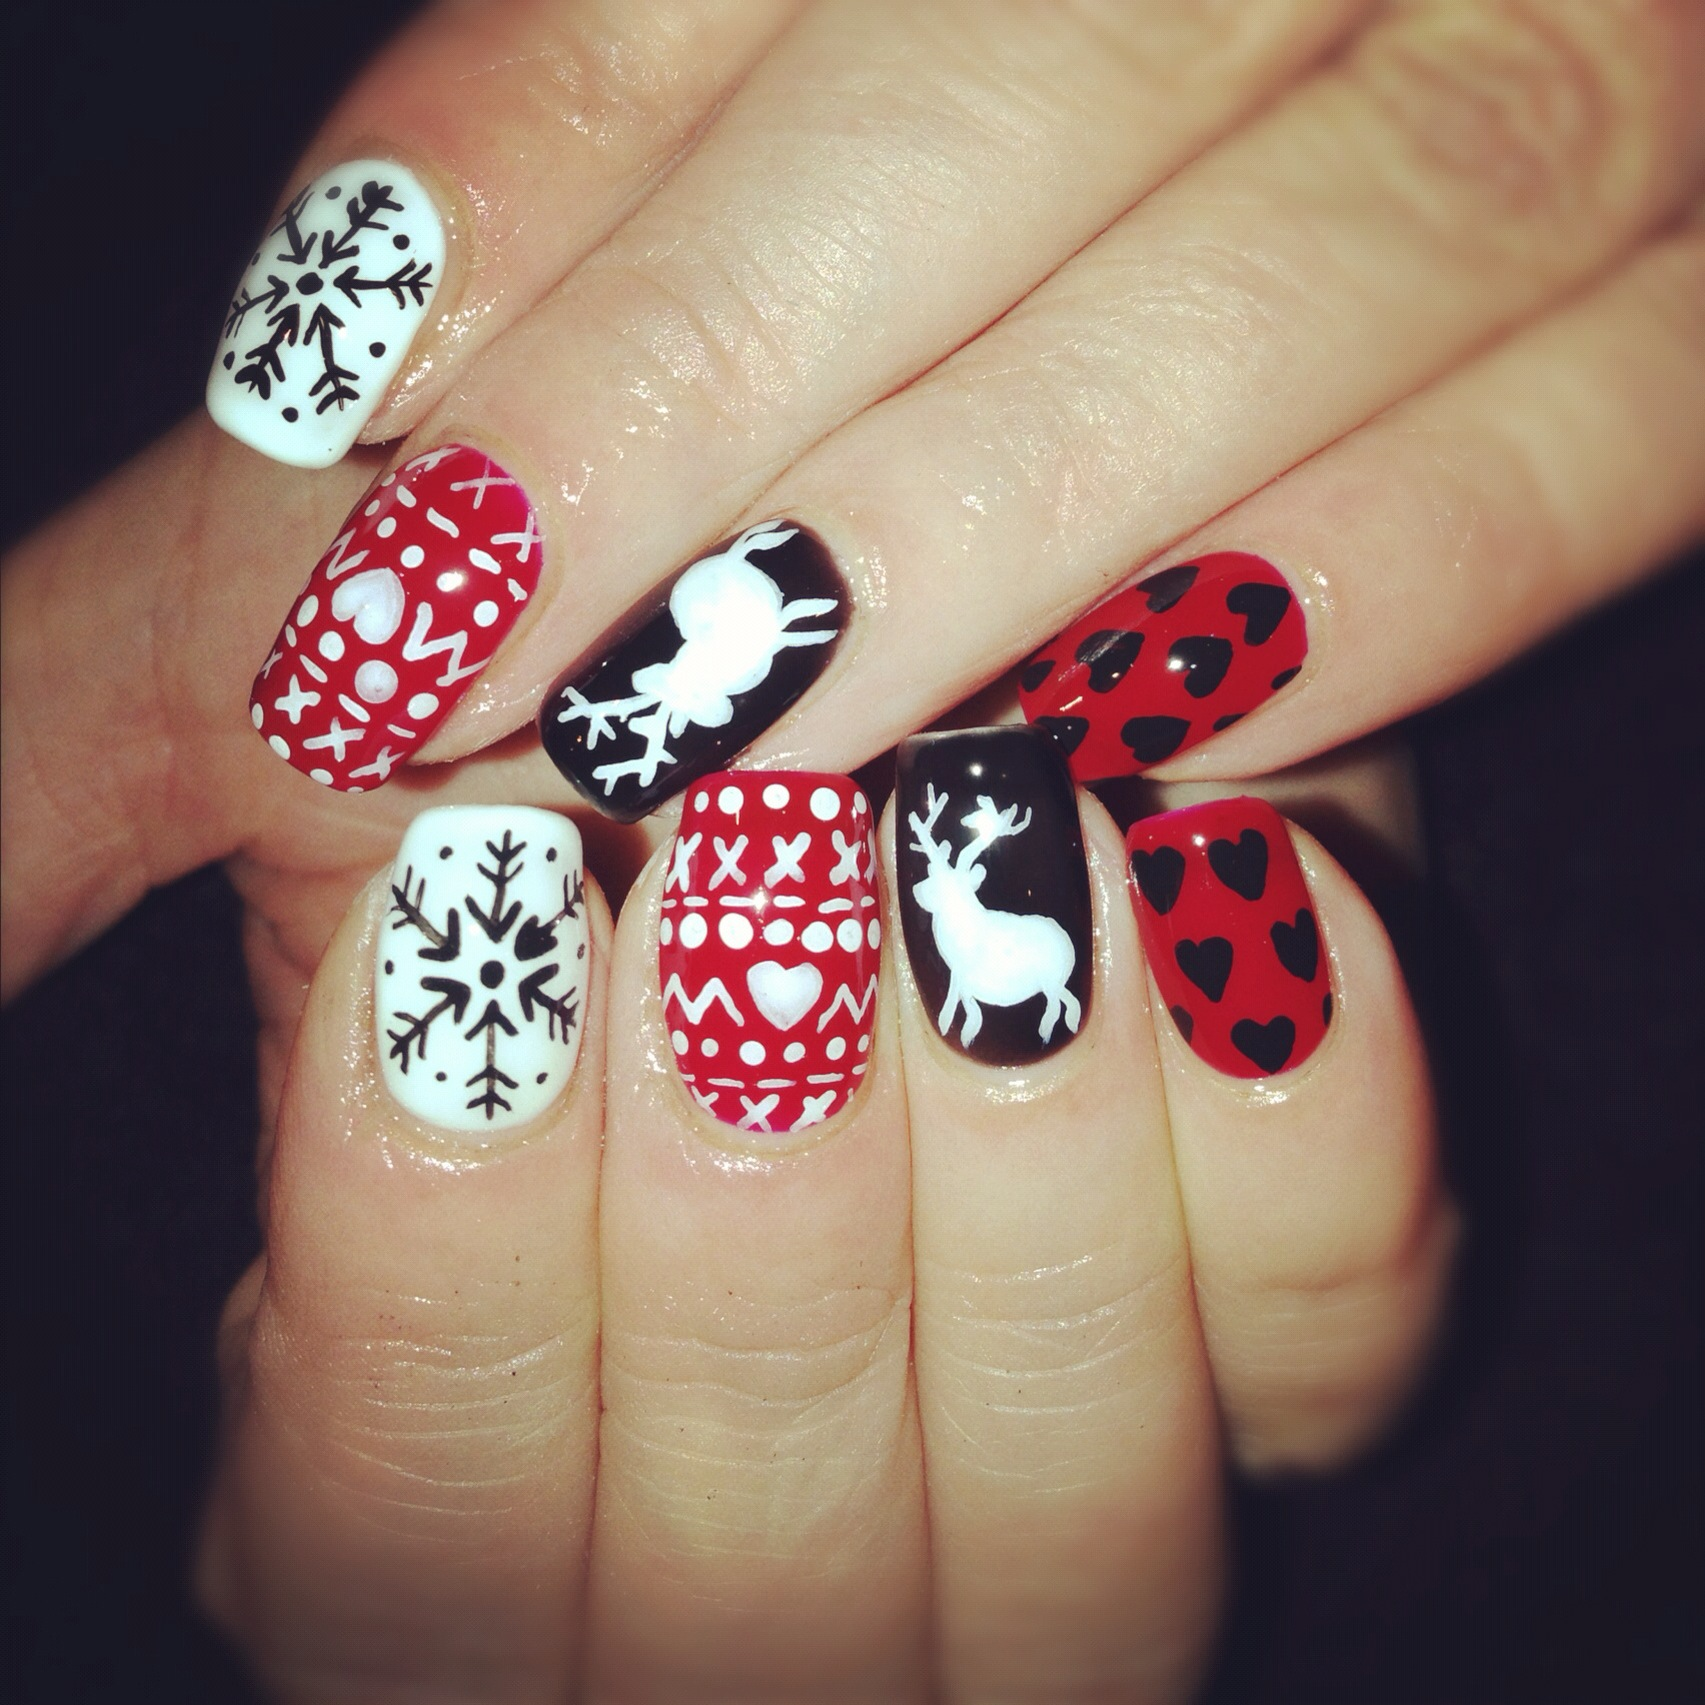 13 Christmas Gel Nail Designs Images Christmas Gel Nails Christmas Gel Nail Art Designs And Christmas Nail Design Ideas Newdesignfile Com